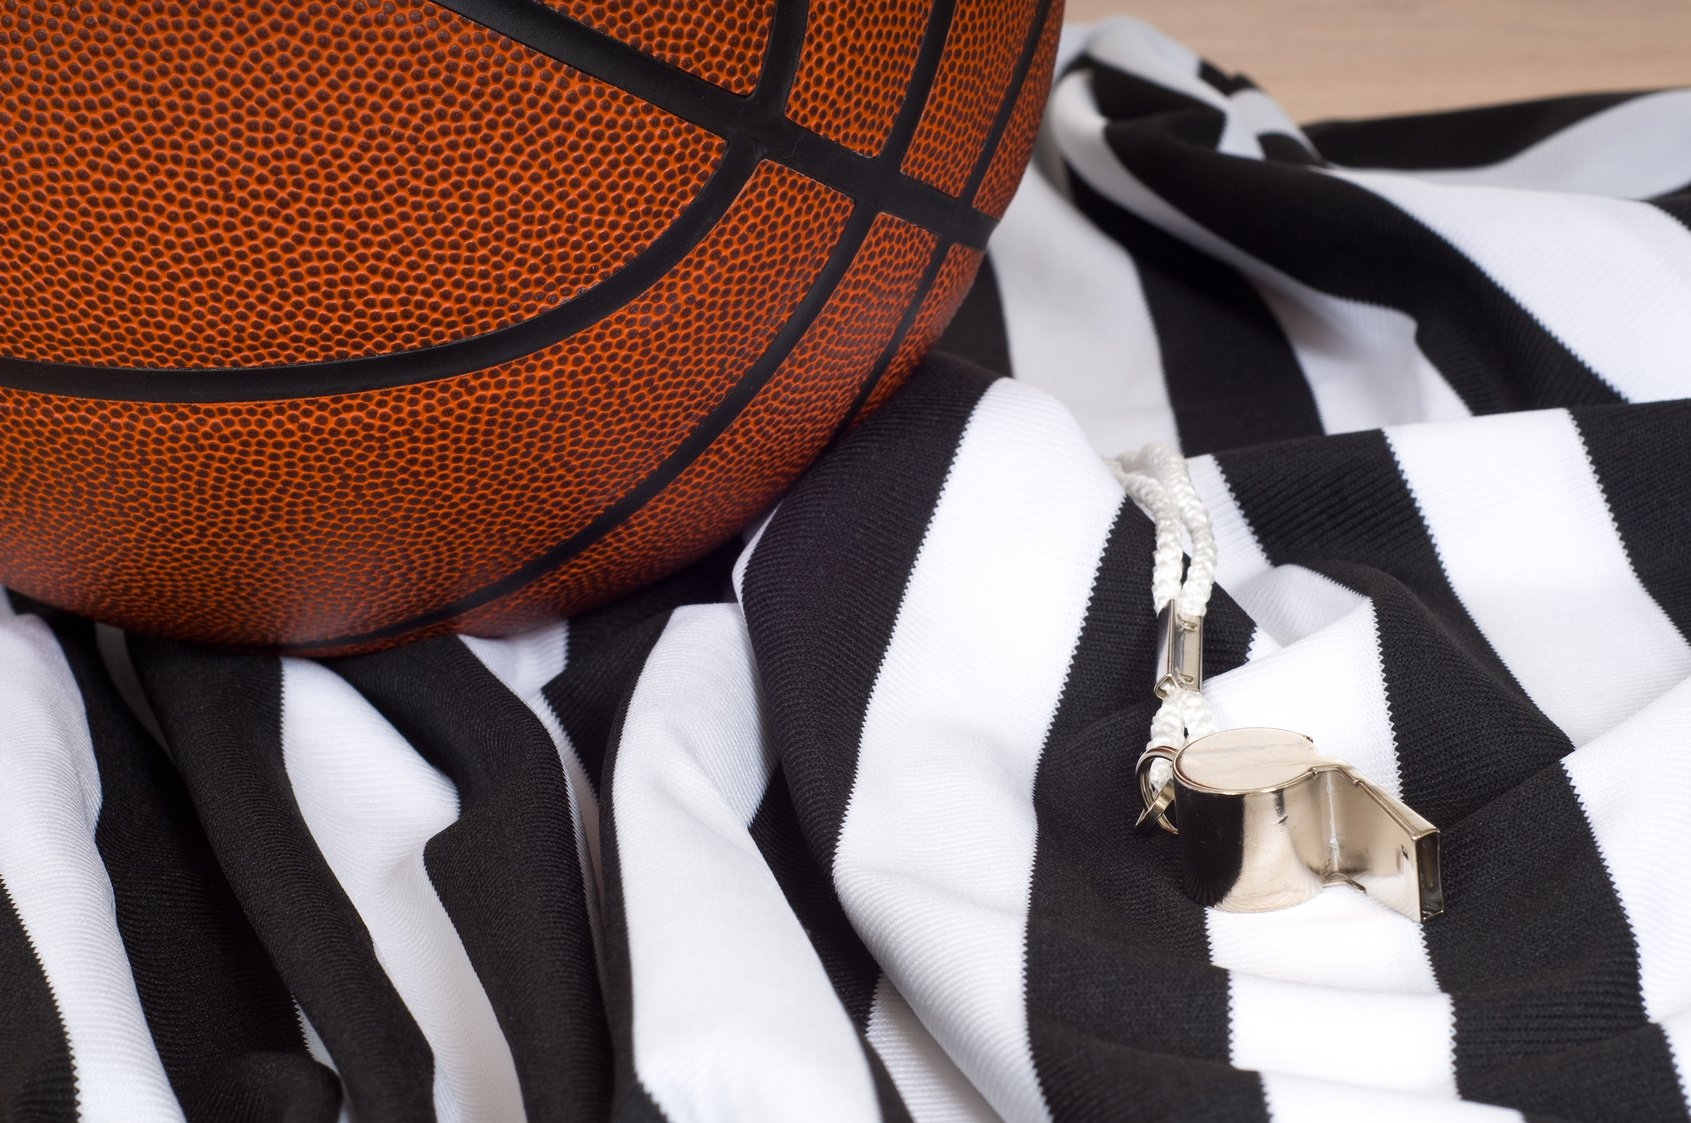 How To Referee A Basketball Game - The Key Points & Rules